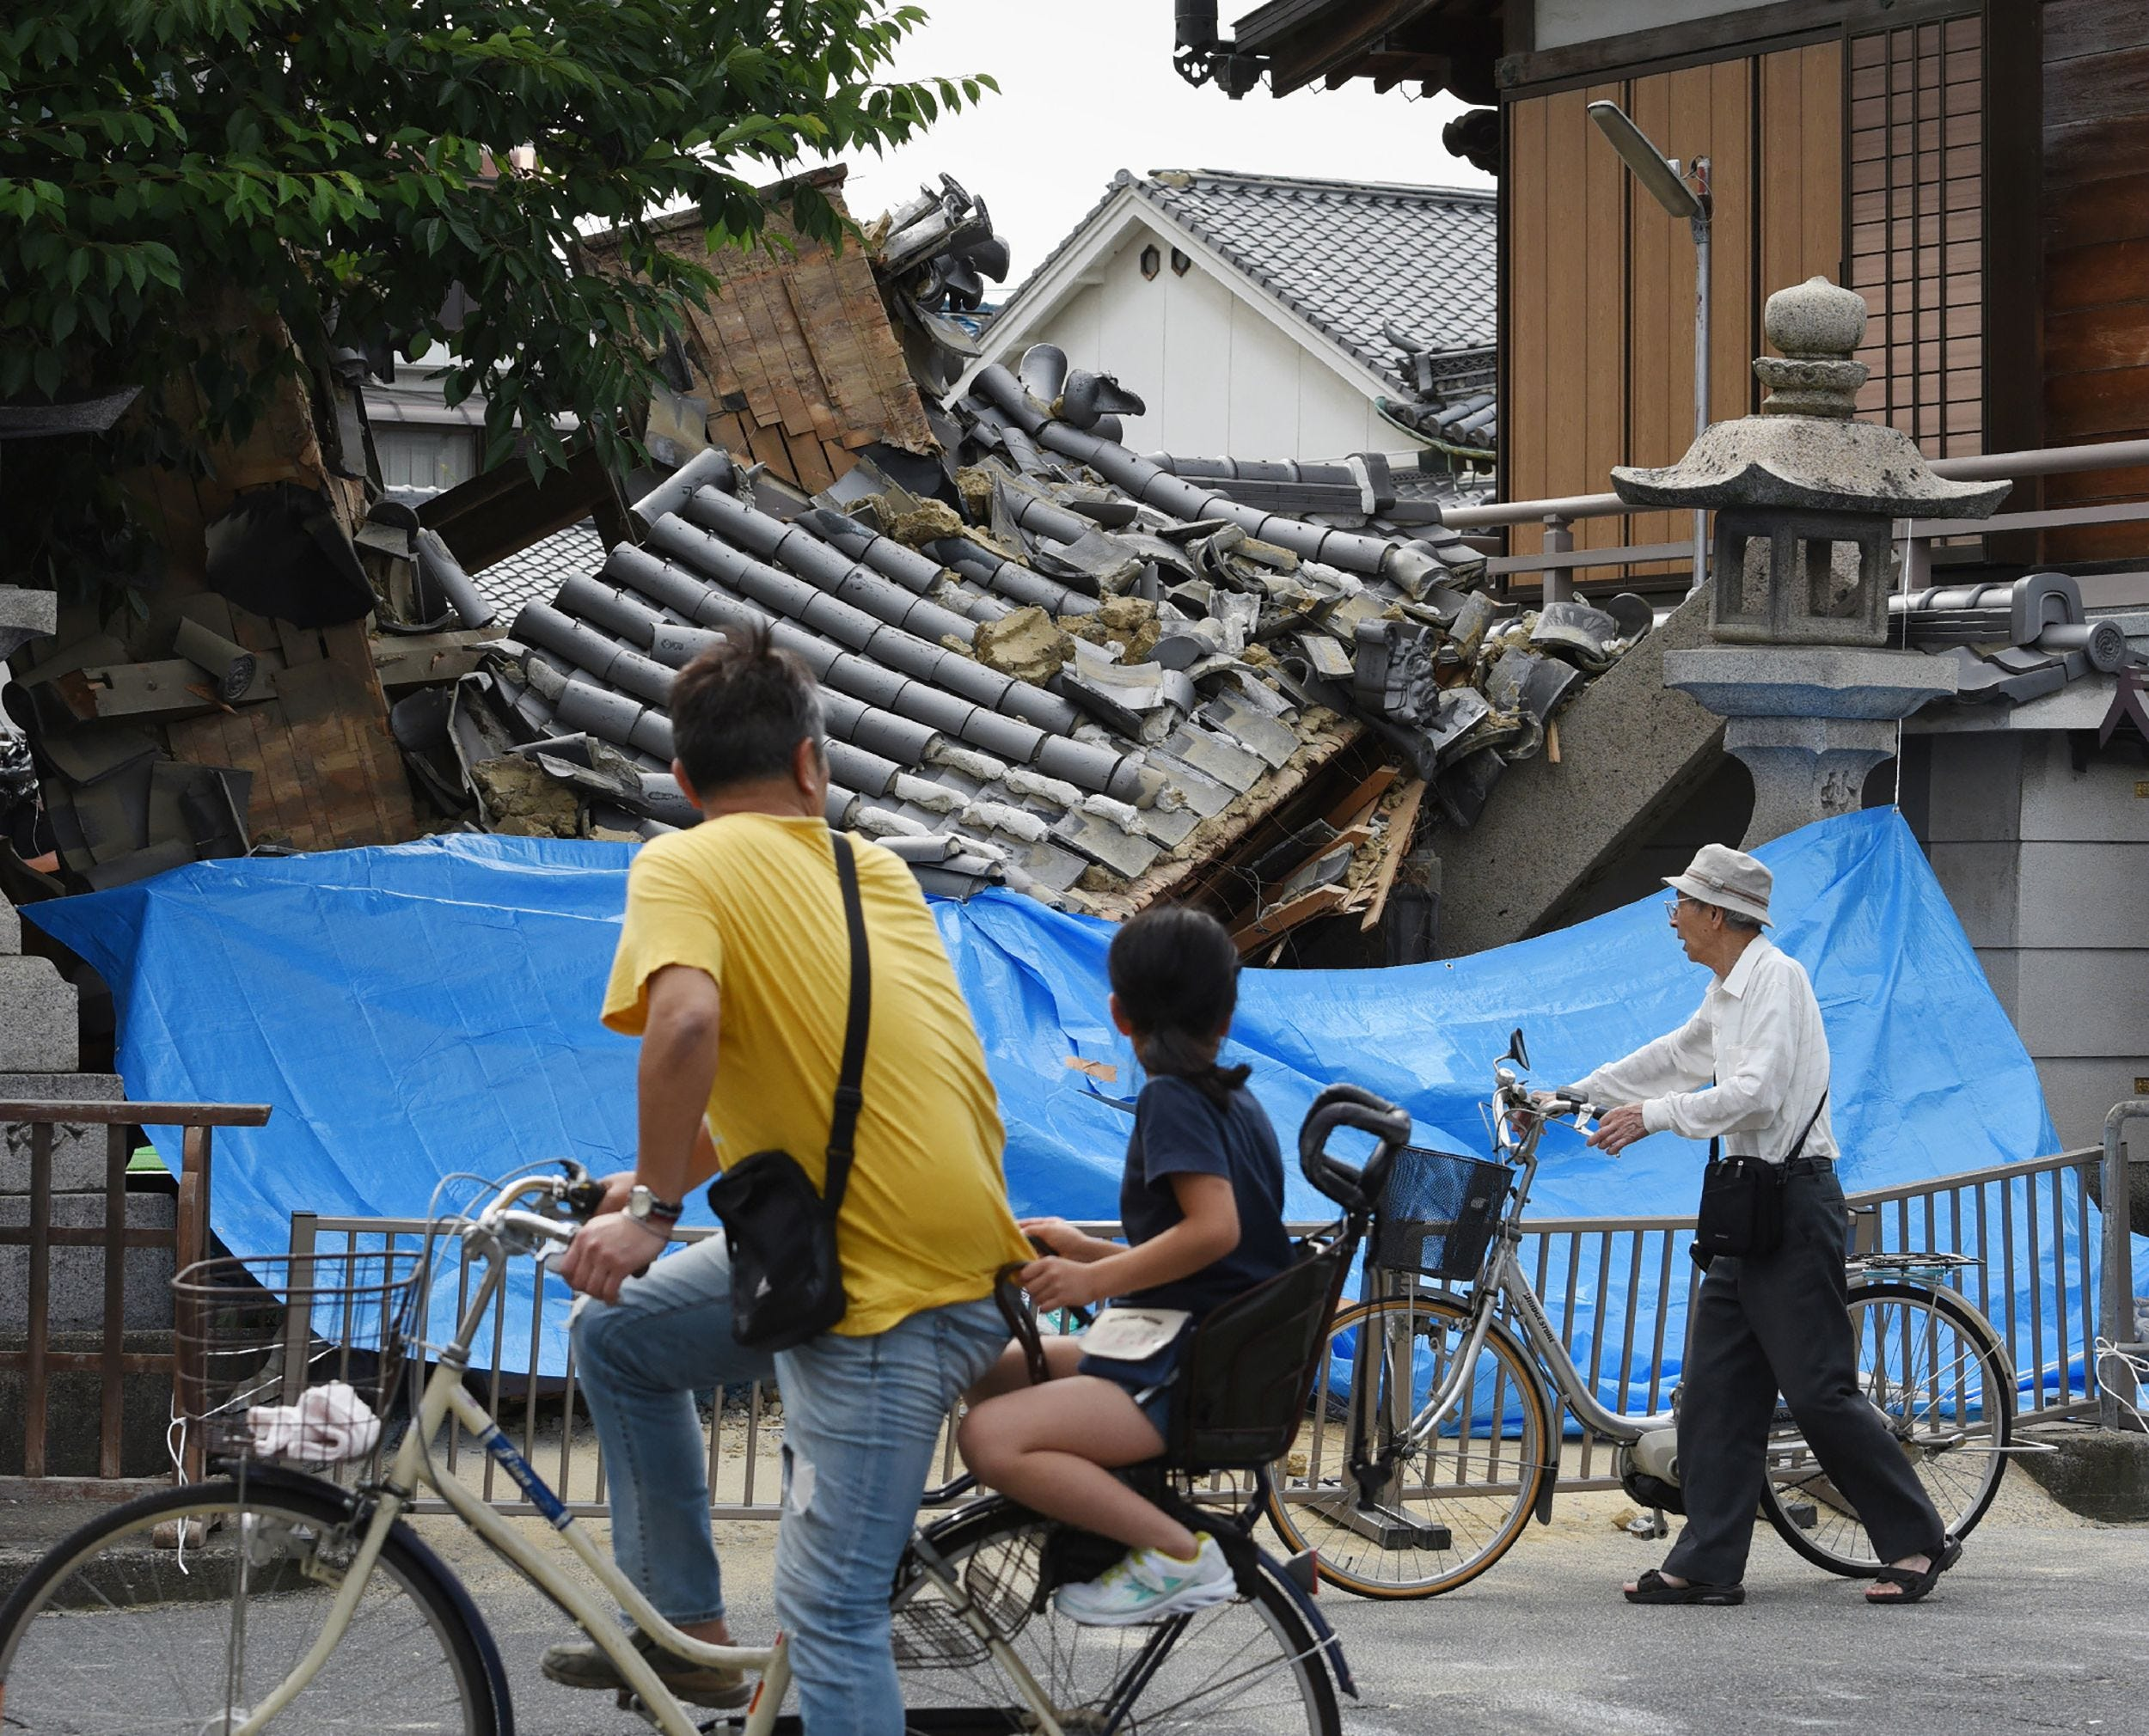 Strong earthquake near Osaka in Japan kills 3, injures hundreds